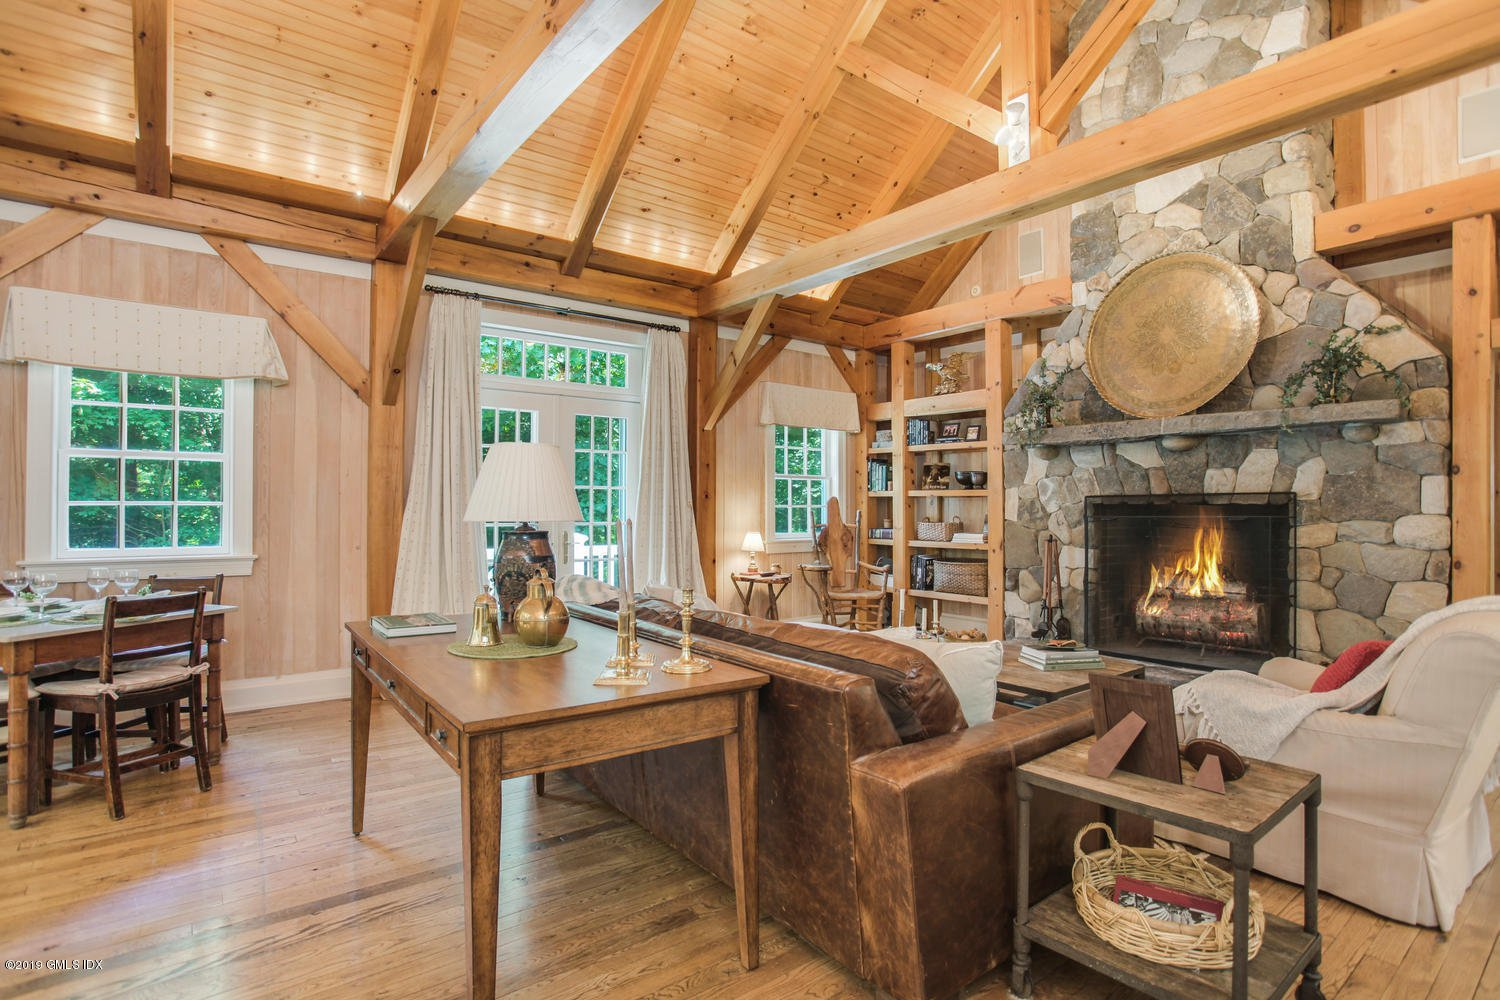 I always caution my clients against making guest cottages  too  comfortable: guests, unwanted relatives and adult children may be tempted to linger beyond Ben Franklin's three-day deadline. Still, …nice.